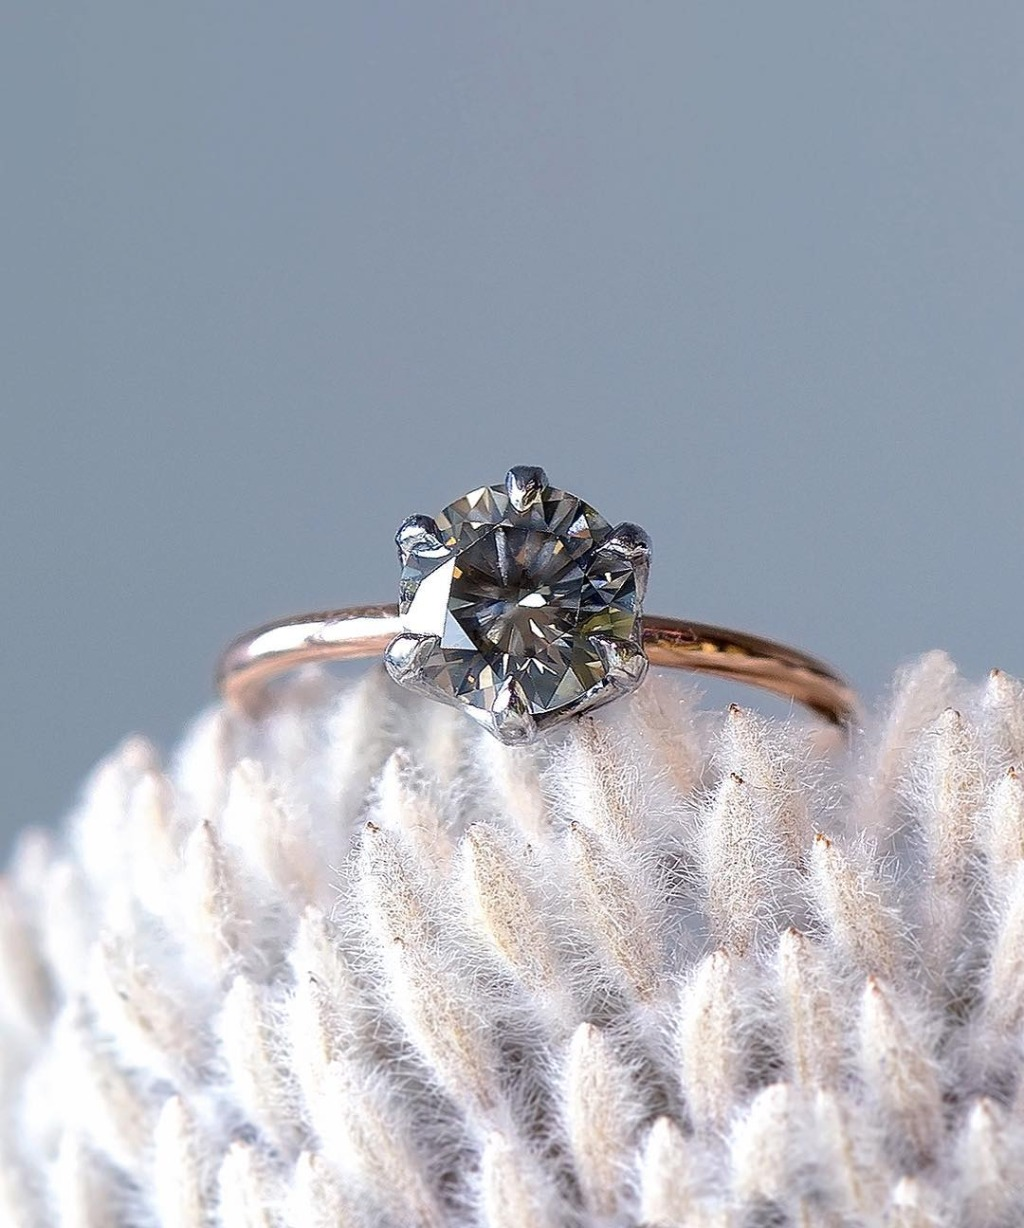 Amazing, Rare, and Dainty One-of-a-kind vintage colored grey diamond engagement ring in recyled rose gold and recyled platinum!